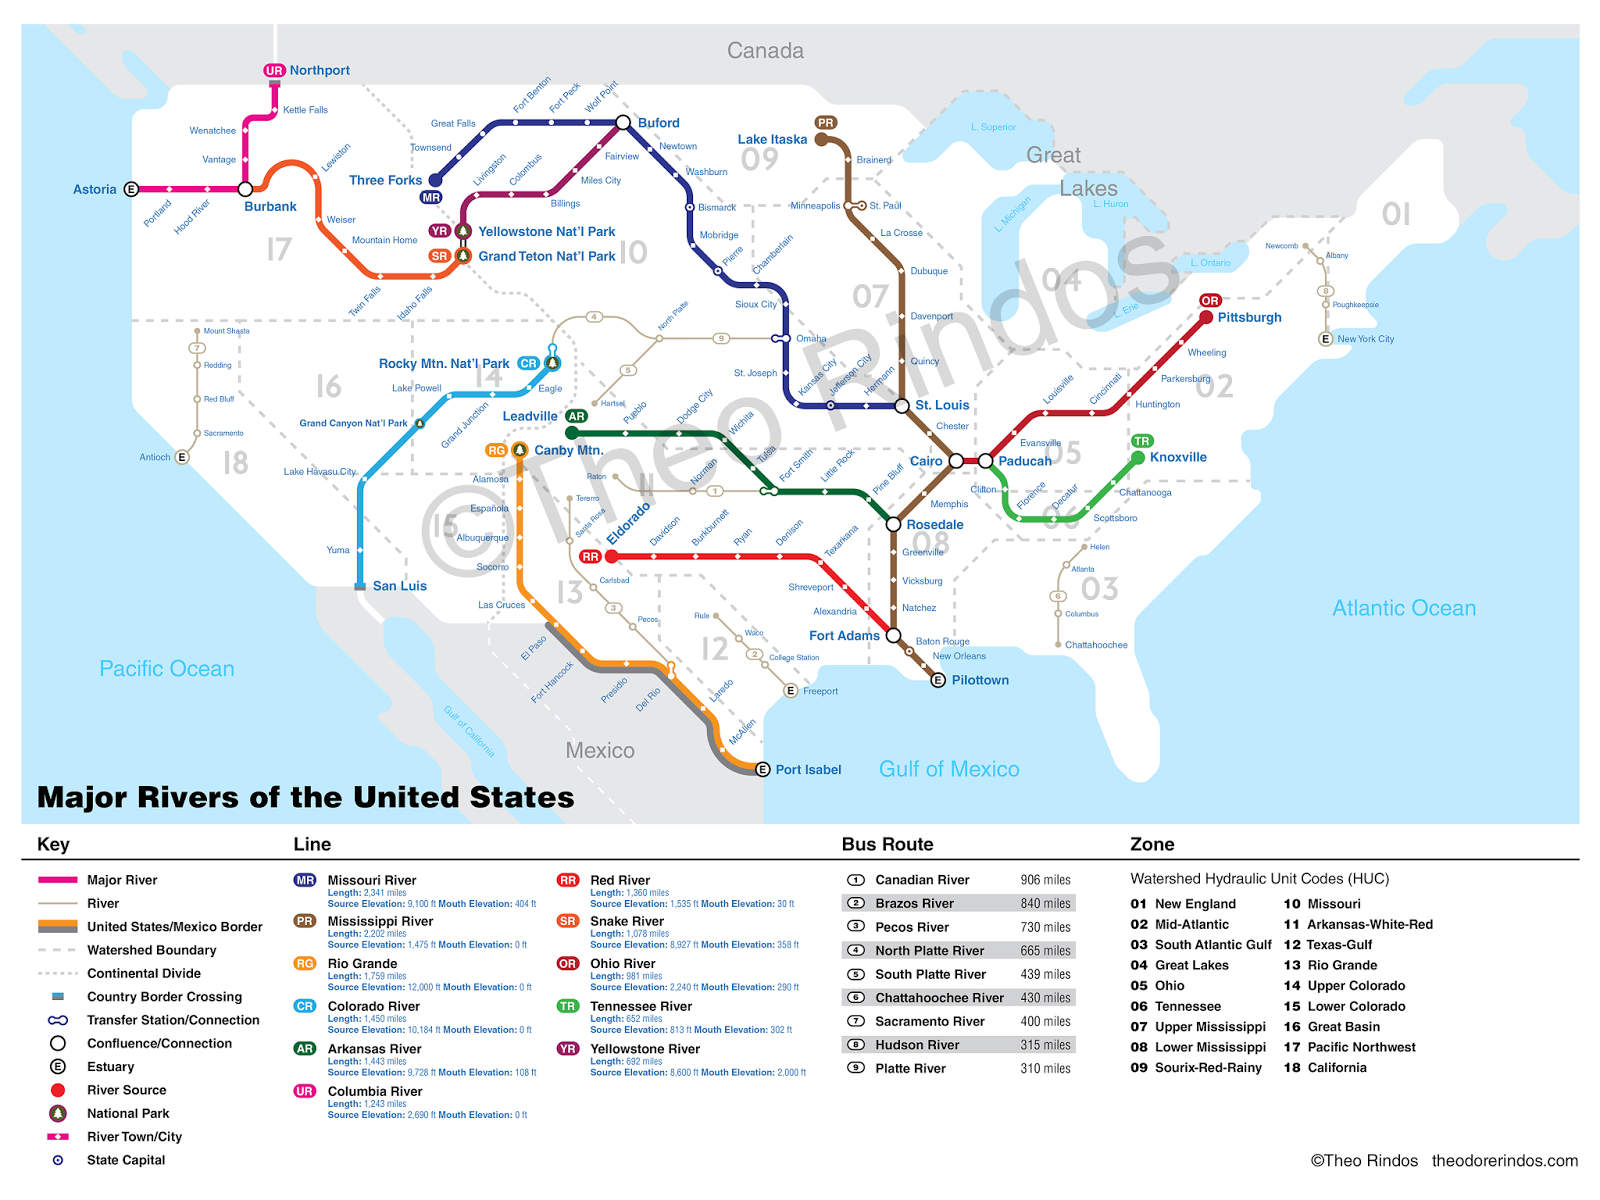 The Rivers of the United States as a Subway Map Maps